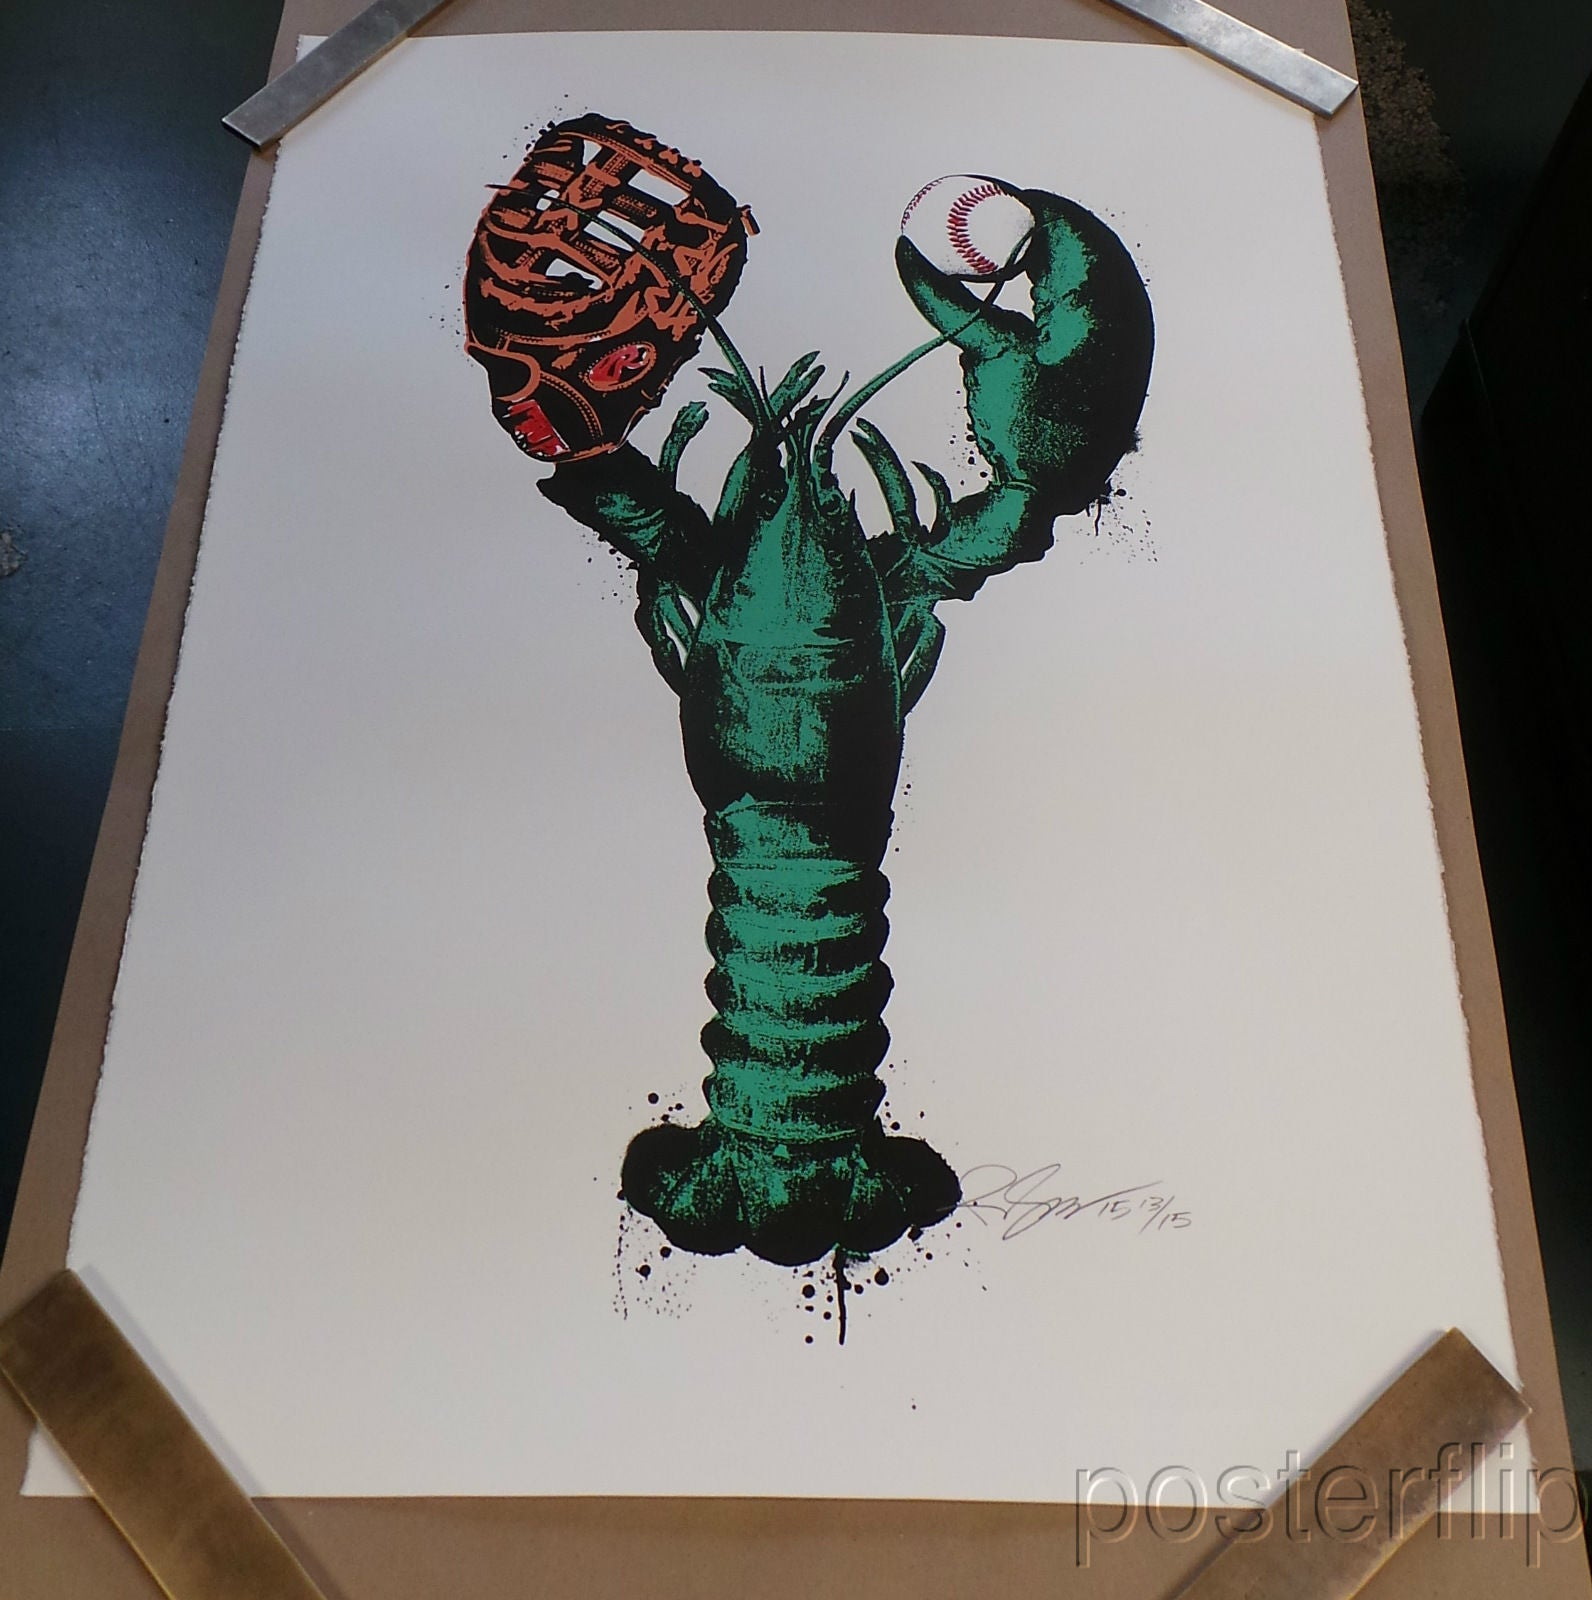 Green Monsta Screenprint Poster Gagnon Limited Edition xx/15, Signed/Numbered